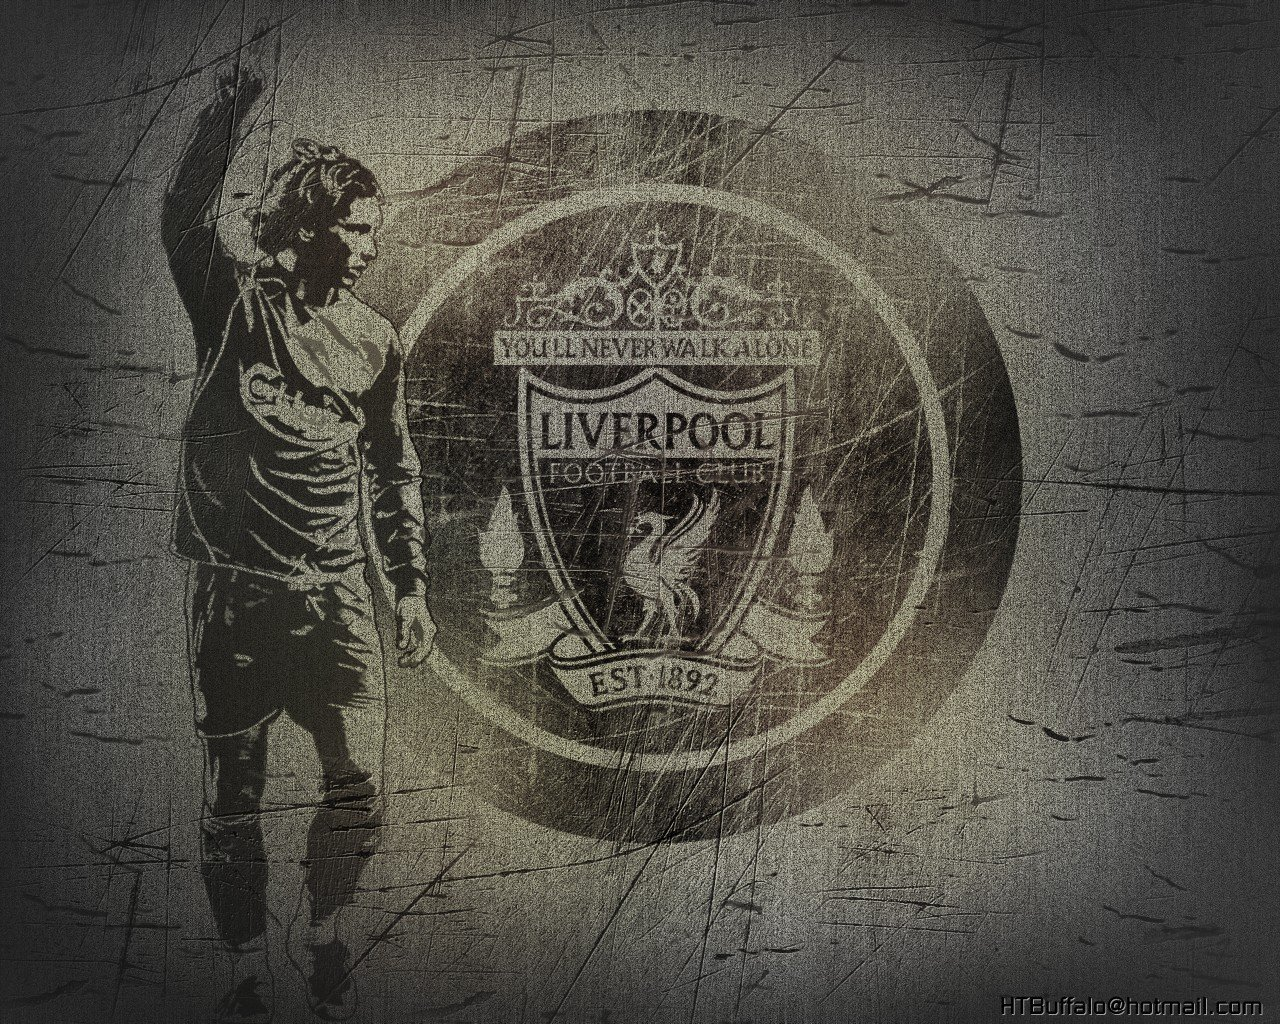 Liverpool FC Images Wallpapers 2 HD Wallpaper And Background Photos